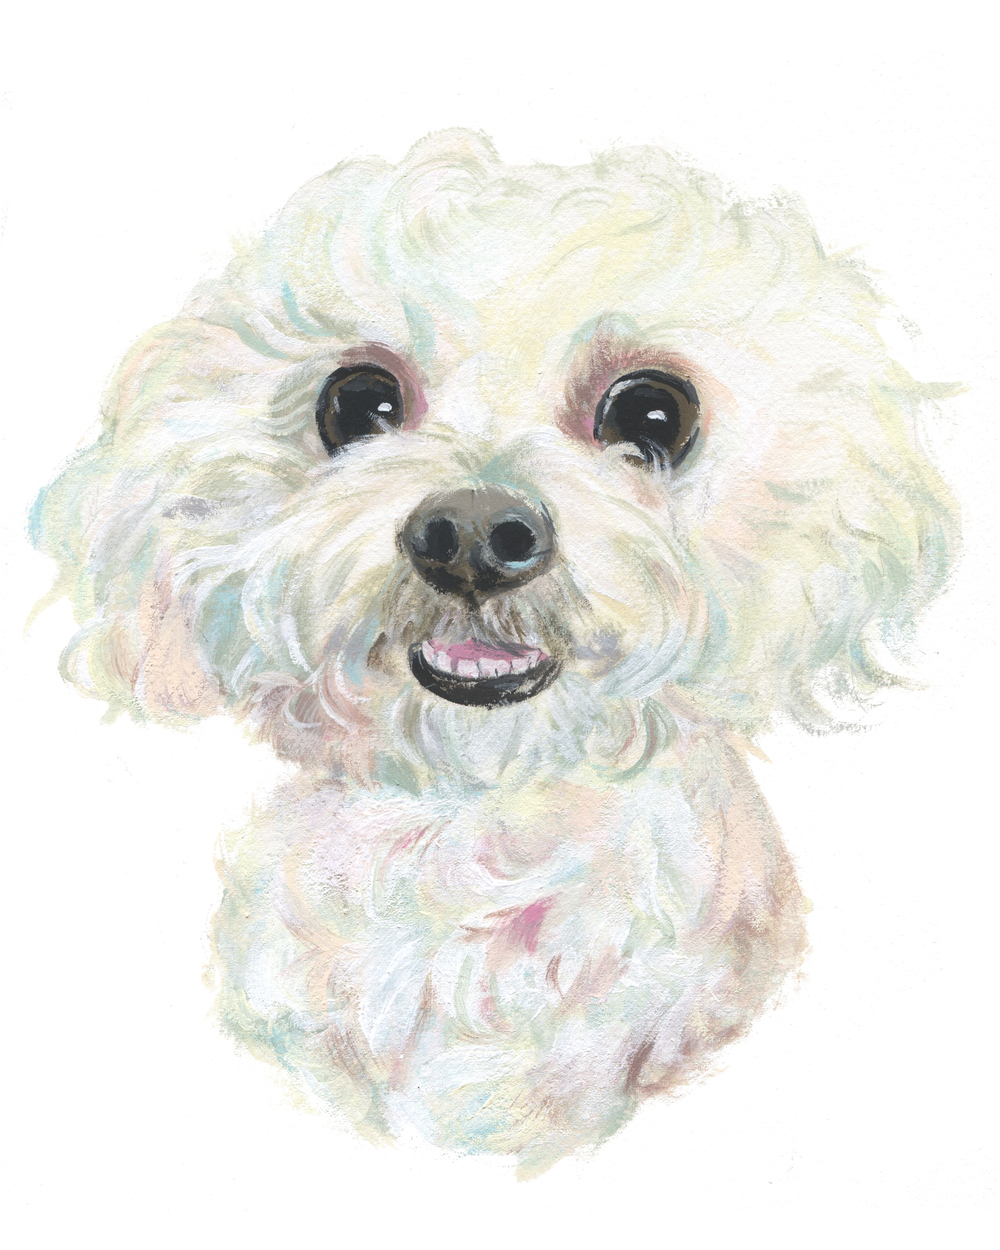 Pet Portrait_Bryan Johnson.jpg